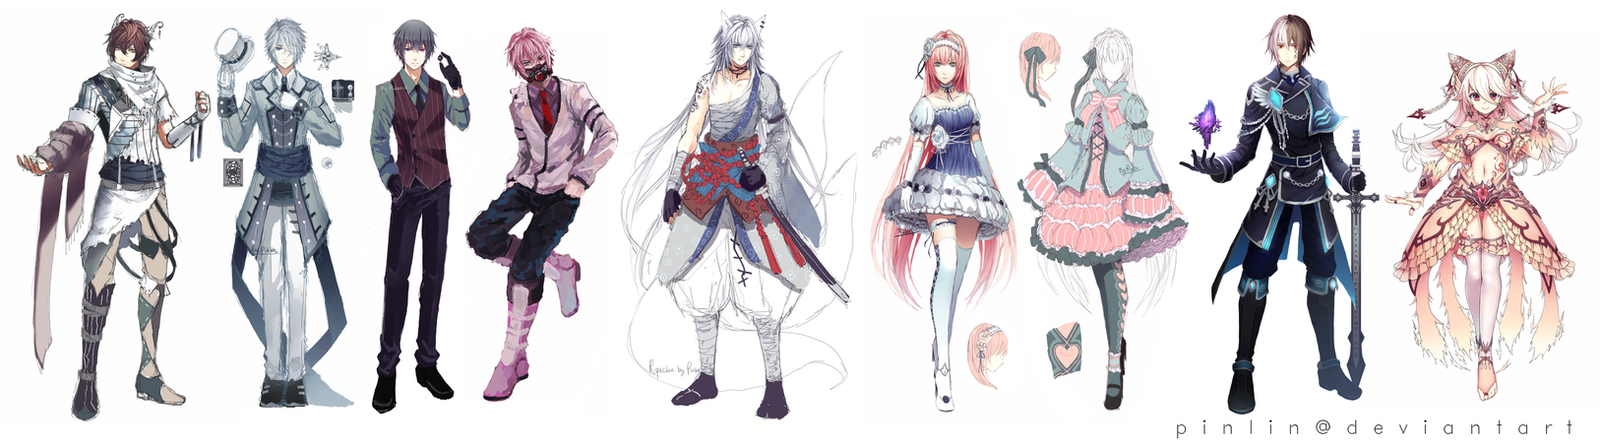 Character Design Group : Character designs by pinlin on deviantart